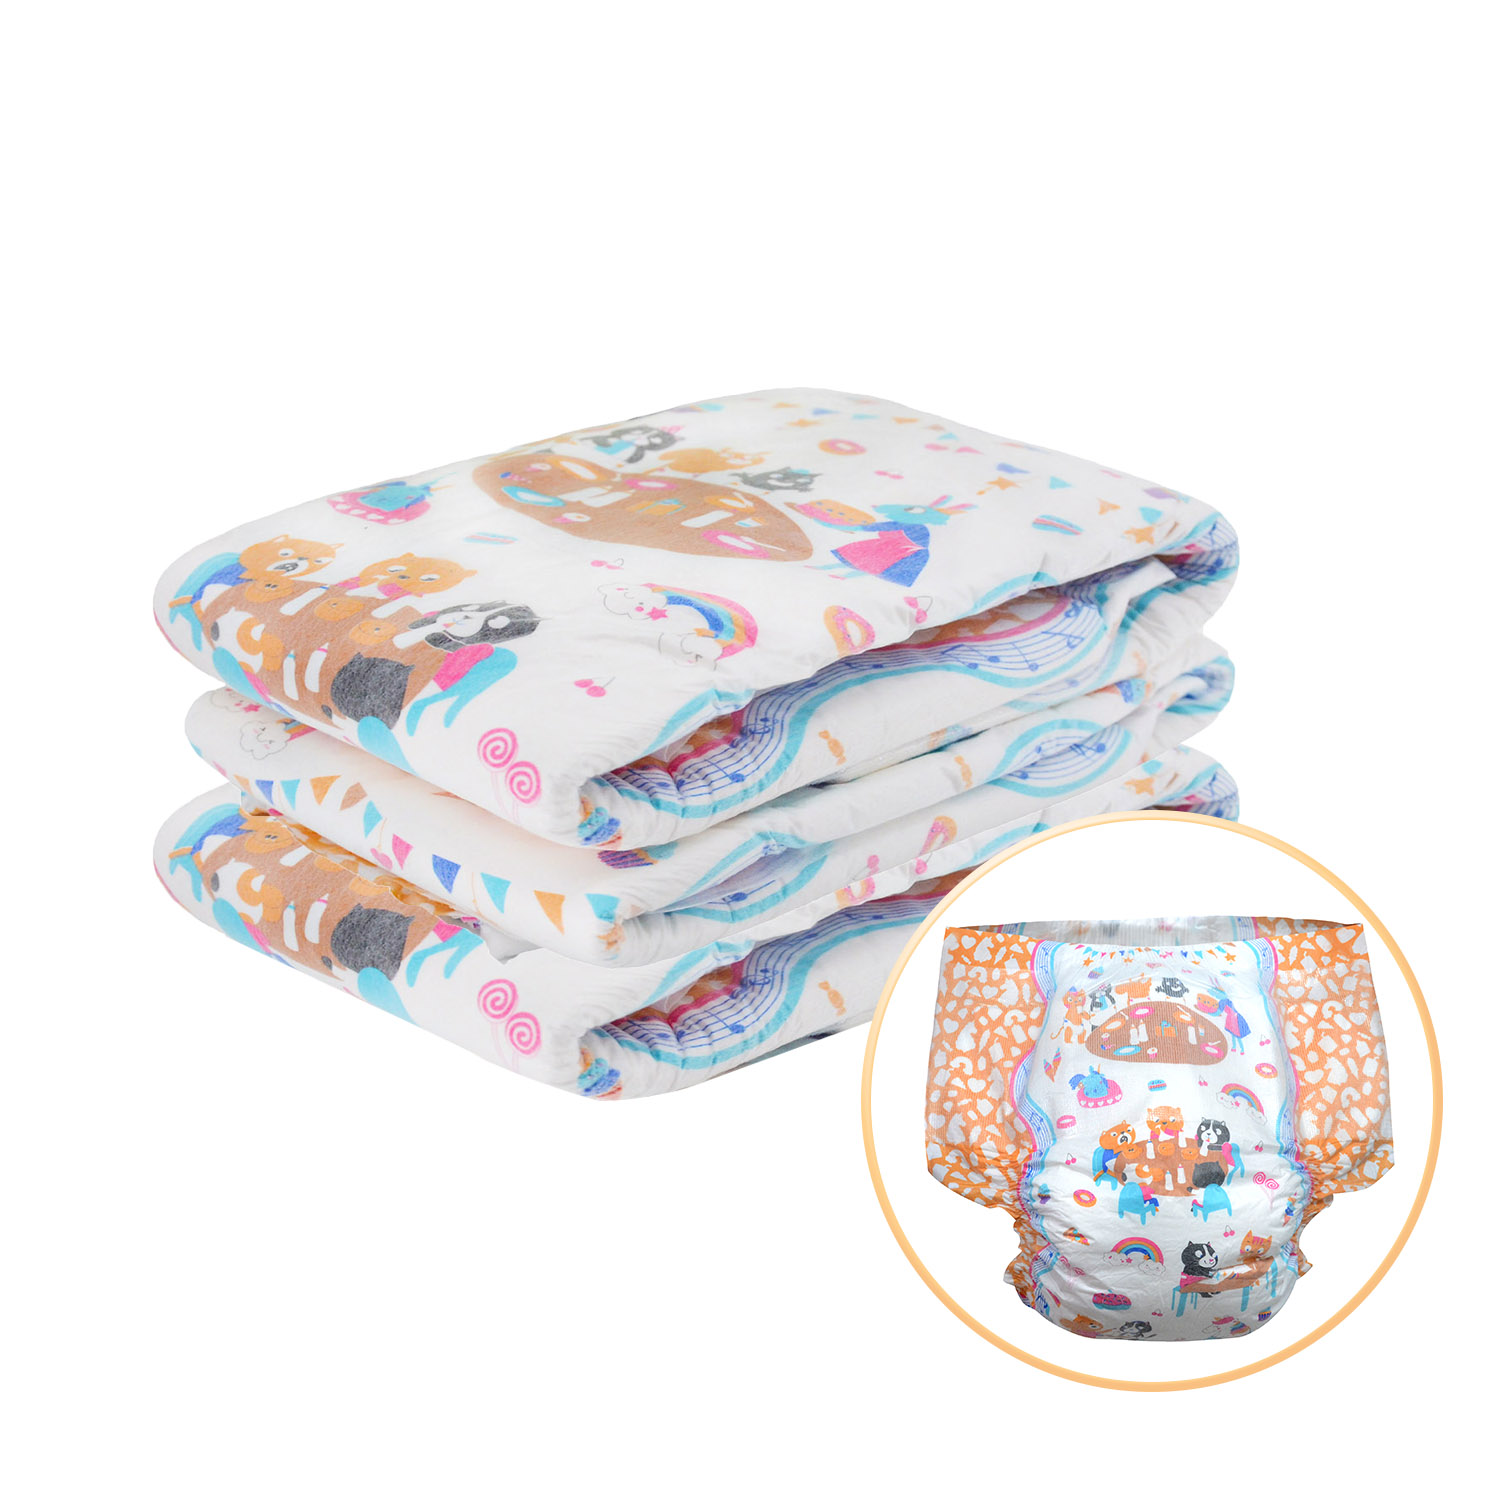 Rainbow Week Diaper ABDL Extra Large Size Diaper Elastic Waistline DDLG Adult Diaper Dummy Dom 6000ml Absorbtive 3pcs In A Pack